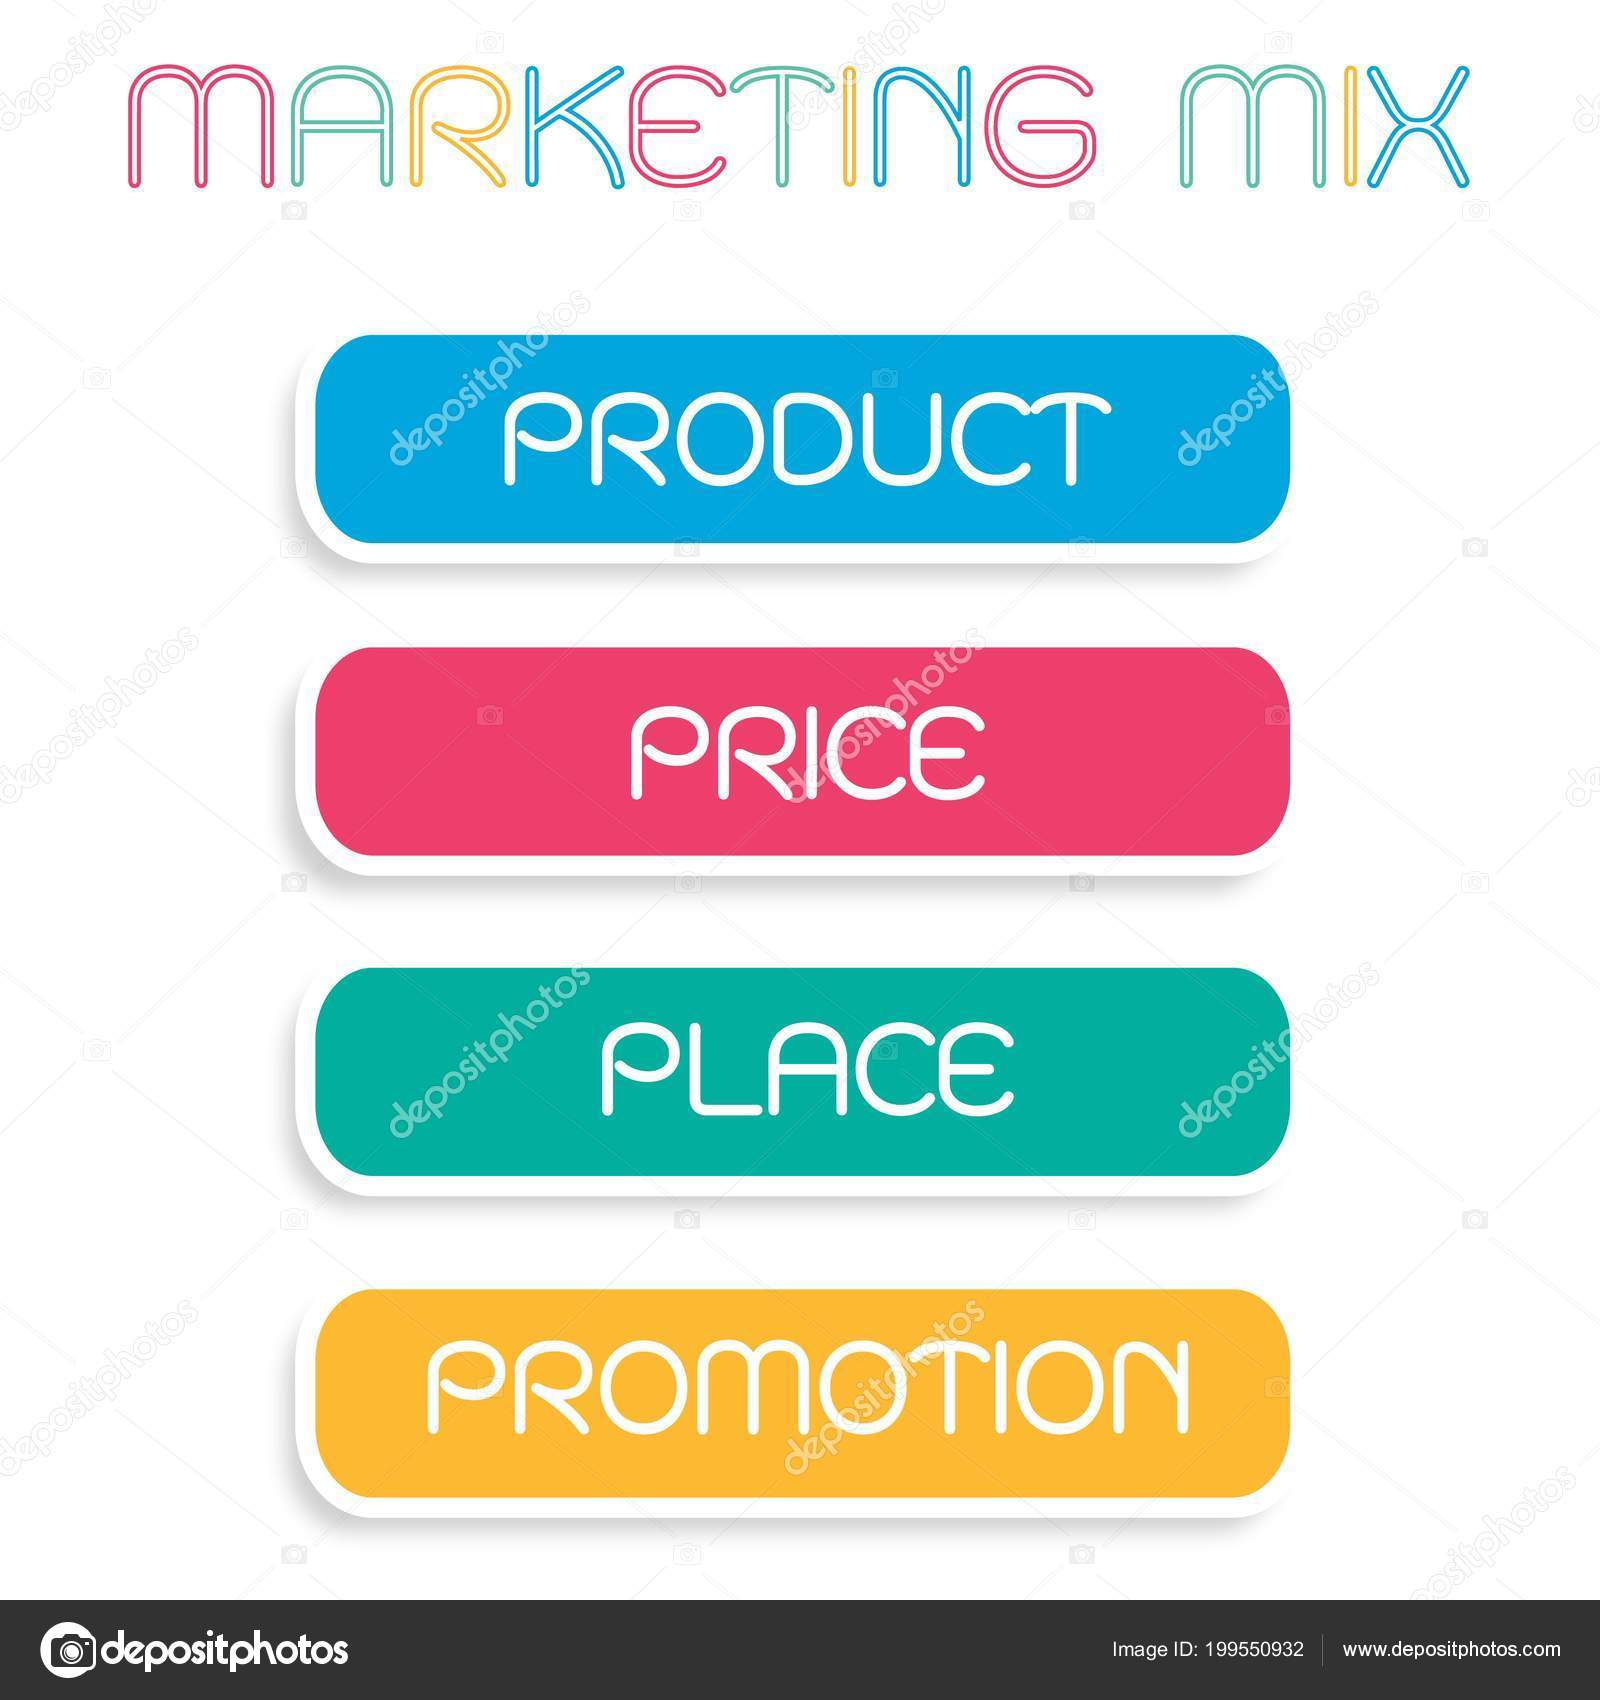 business concepts illustration marketing mix 4ps model management strategy diagram stock vector